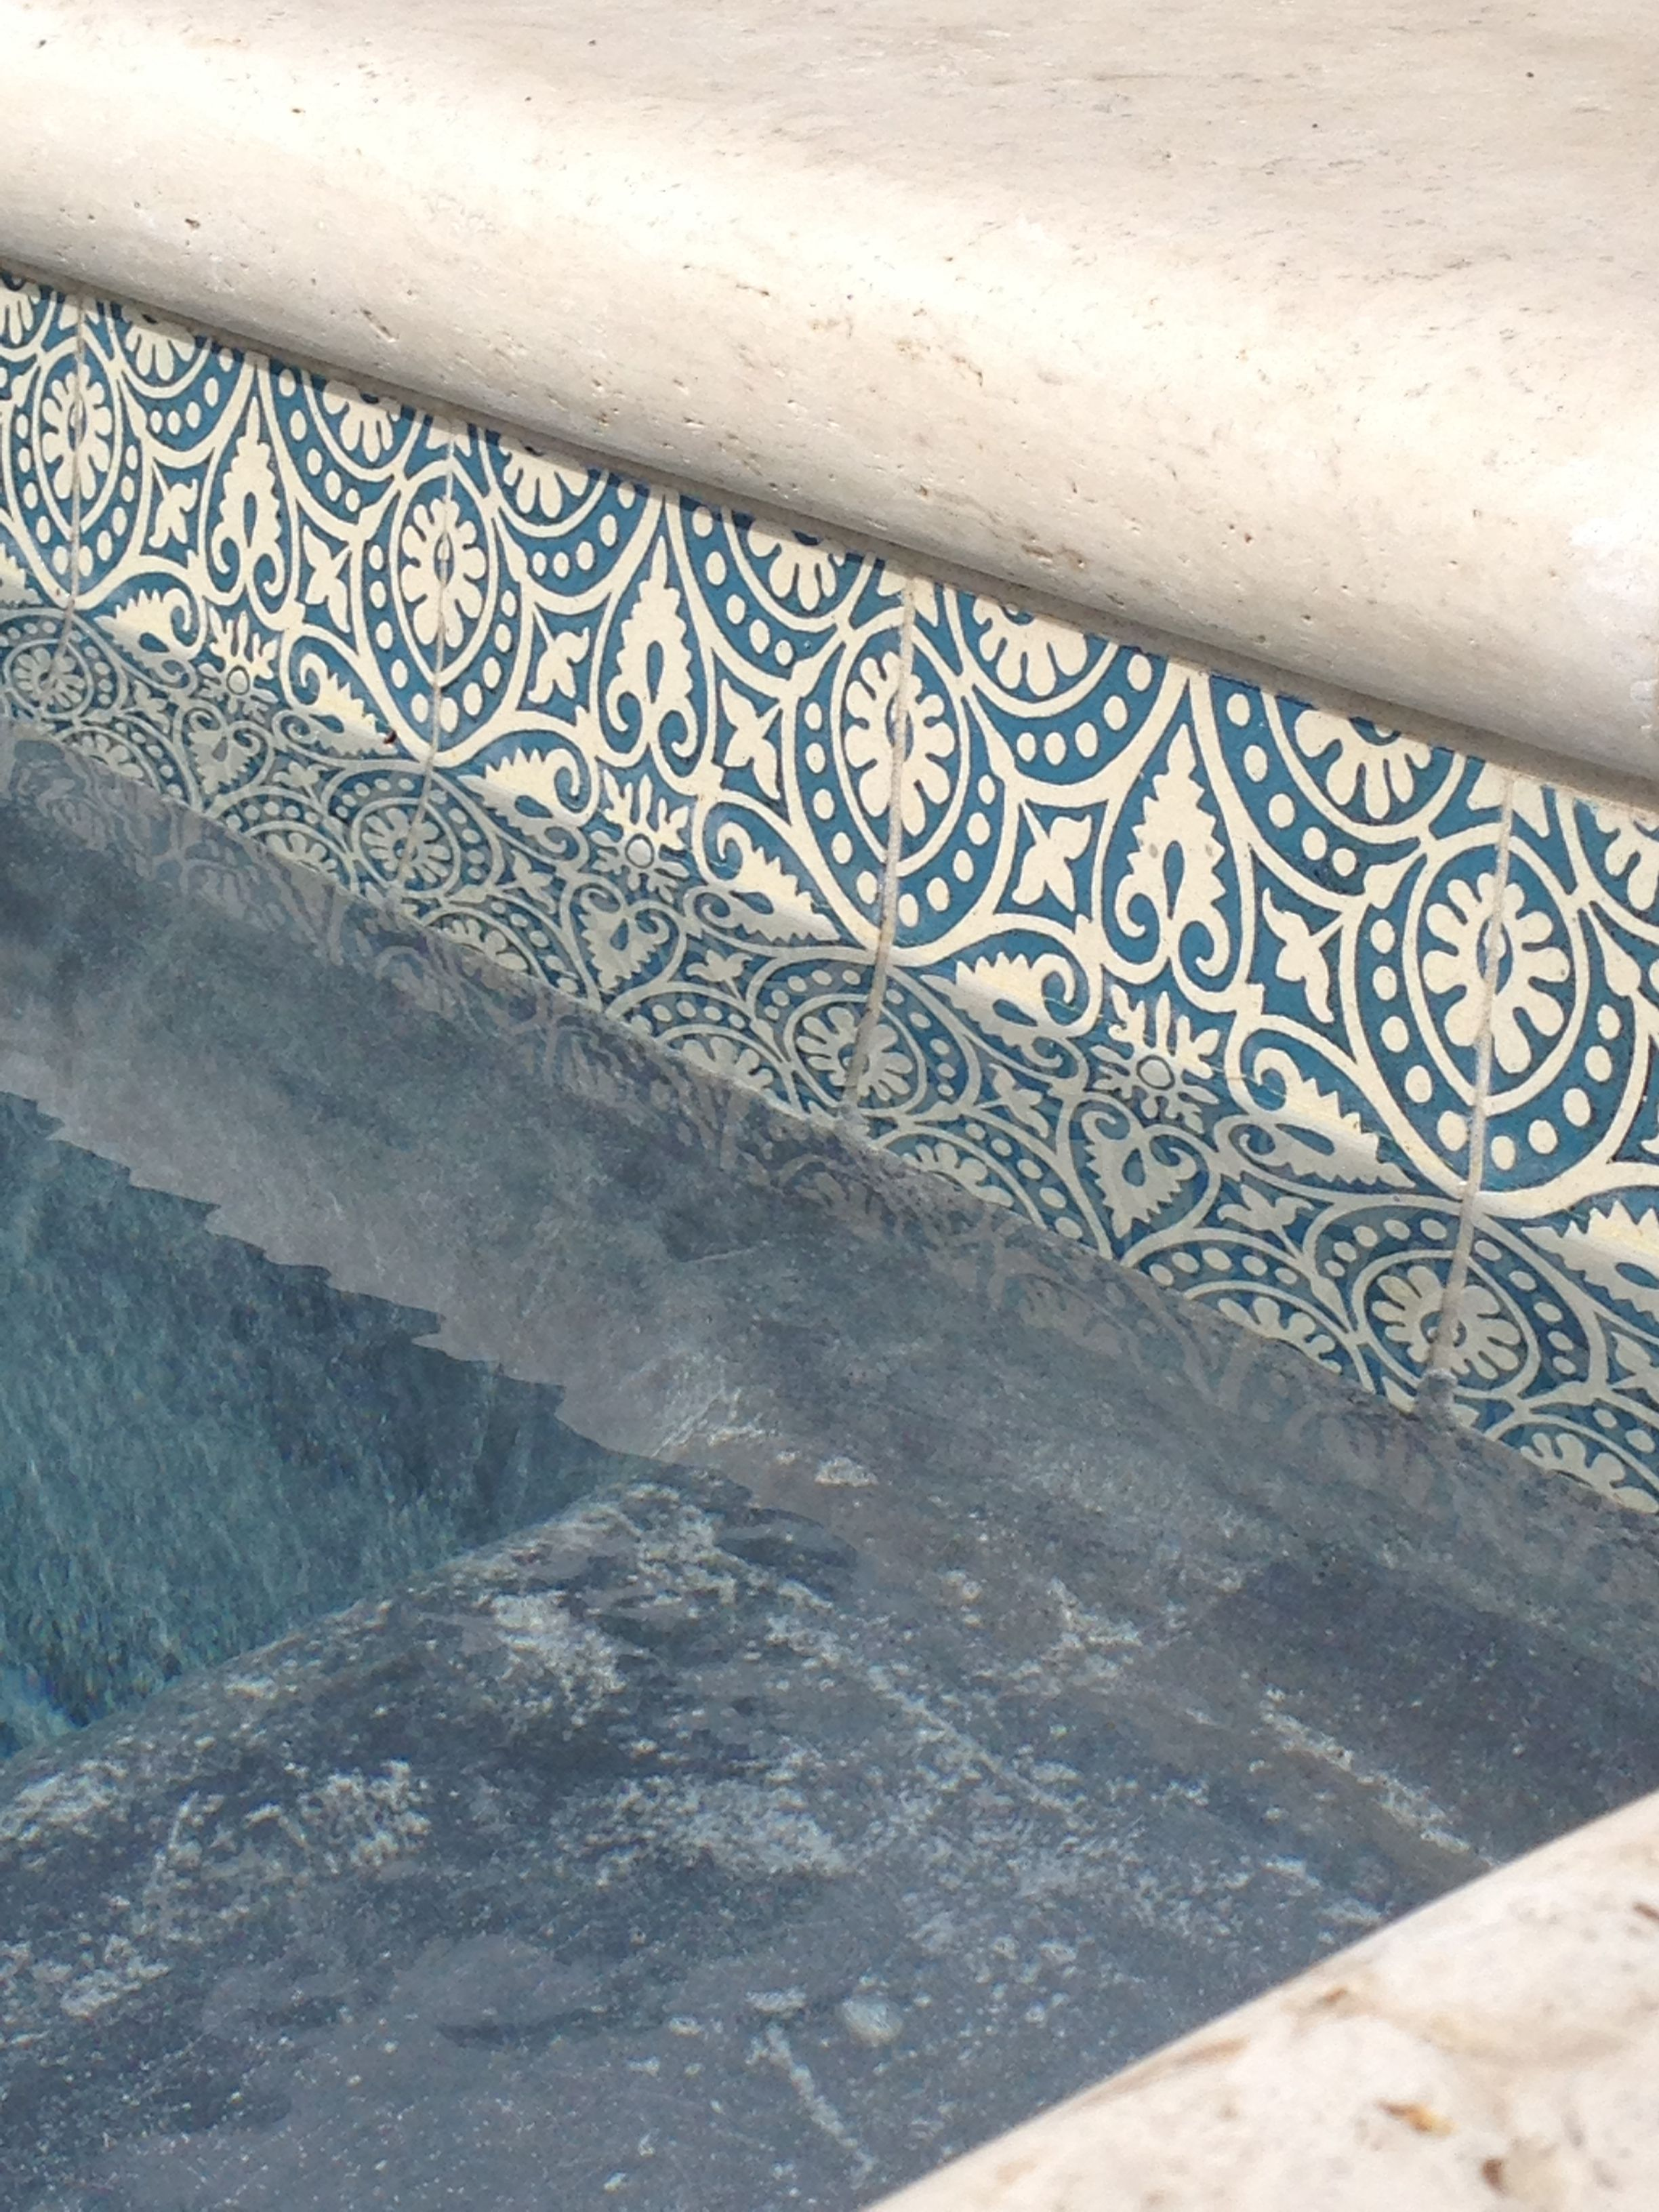 Decorative Pool Tiles Inspiration Patterson Collection  Low Relief Beautiful For A Pool So Decorating Inspiration